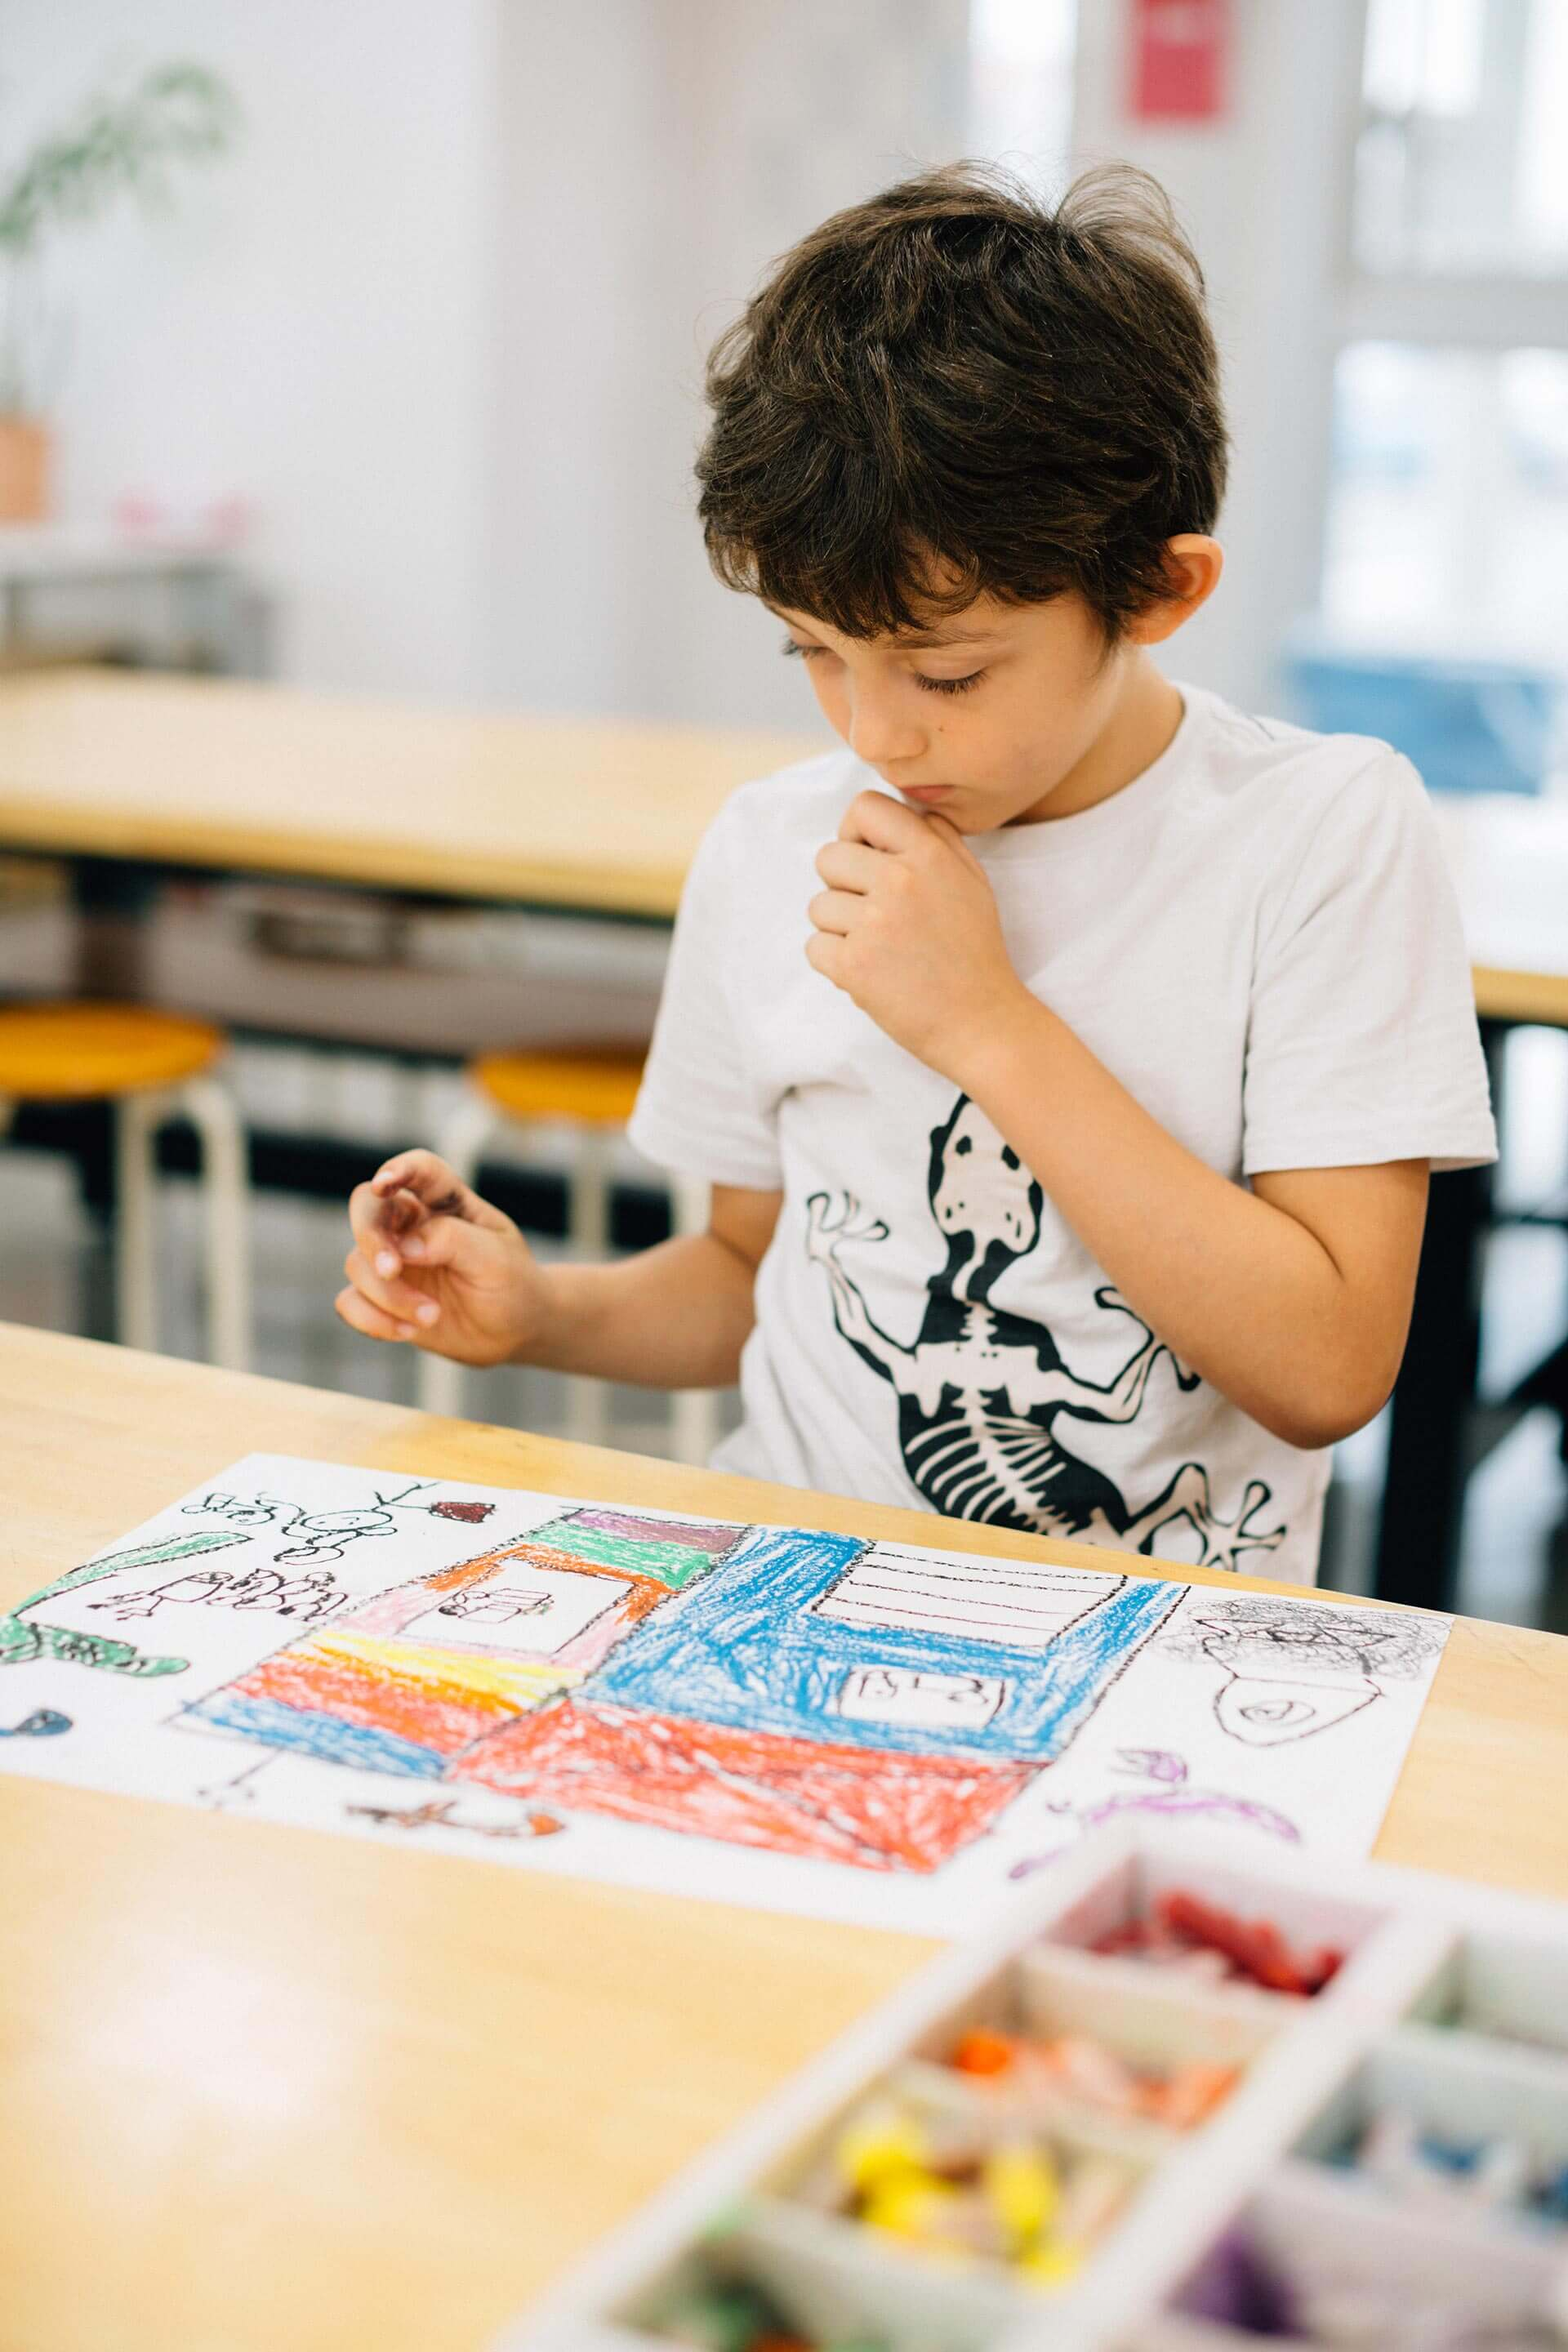 Elementary School Student Drawing in Art Class